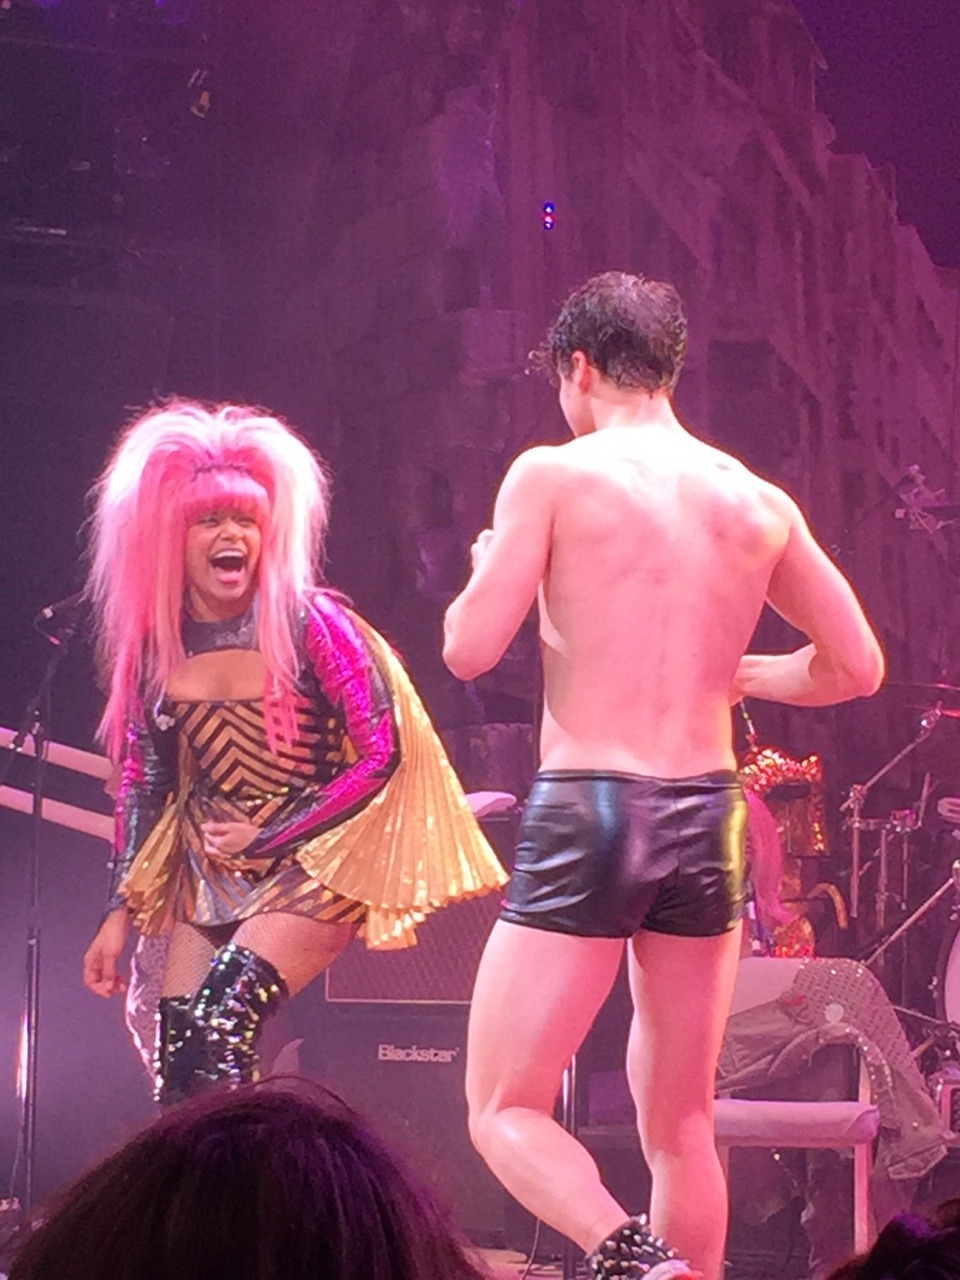 hedwig - Pics and gifs of Darren in Hedwig and the Angry Inch on Broadway. Tumblr_nq6b14Y2Qk1qdtnwjo7_1280